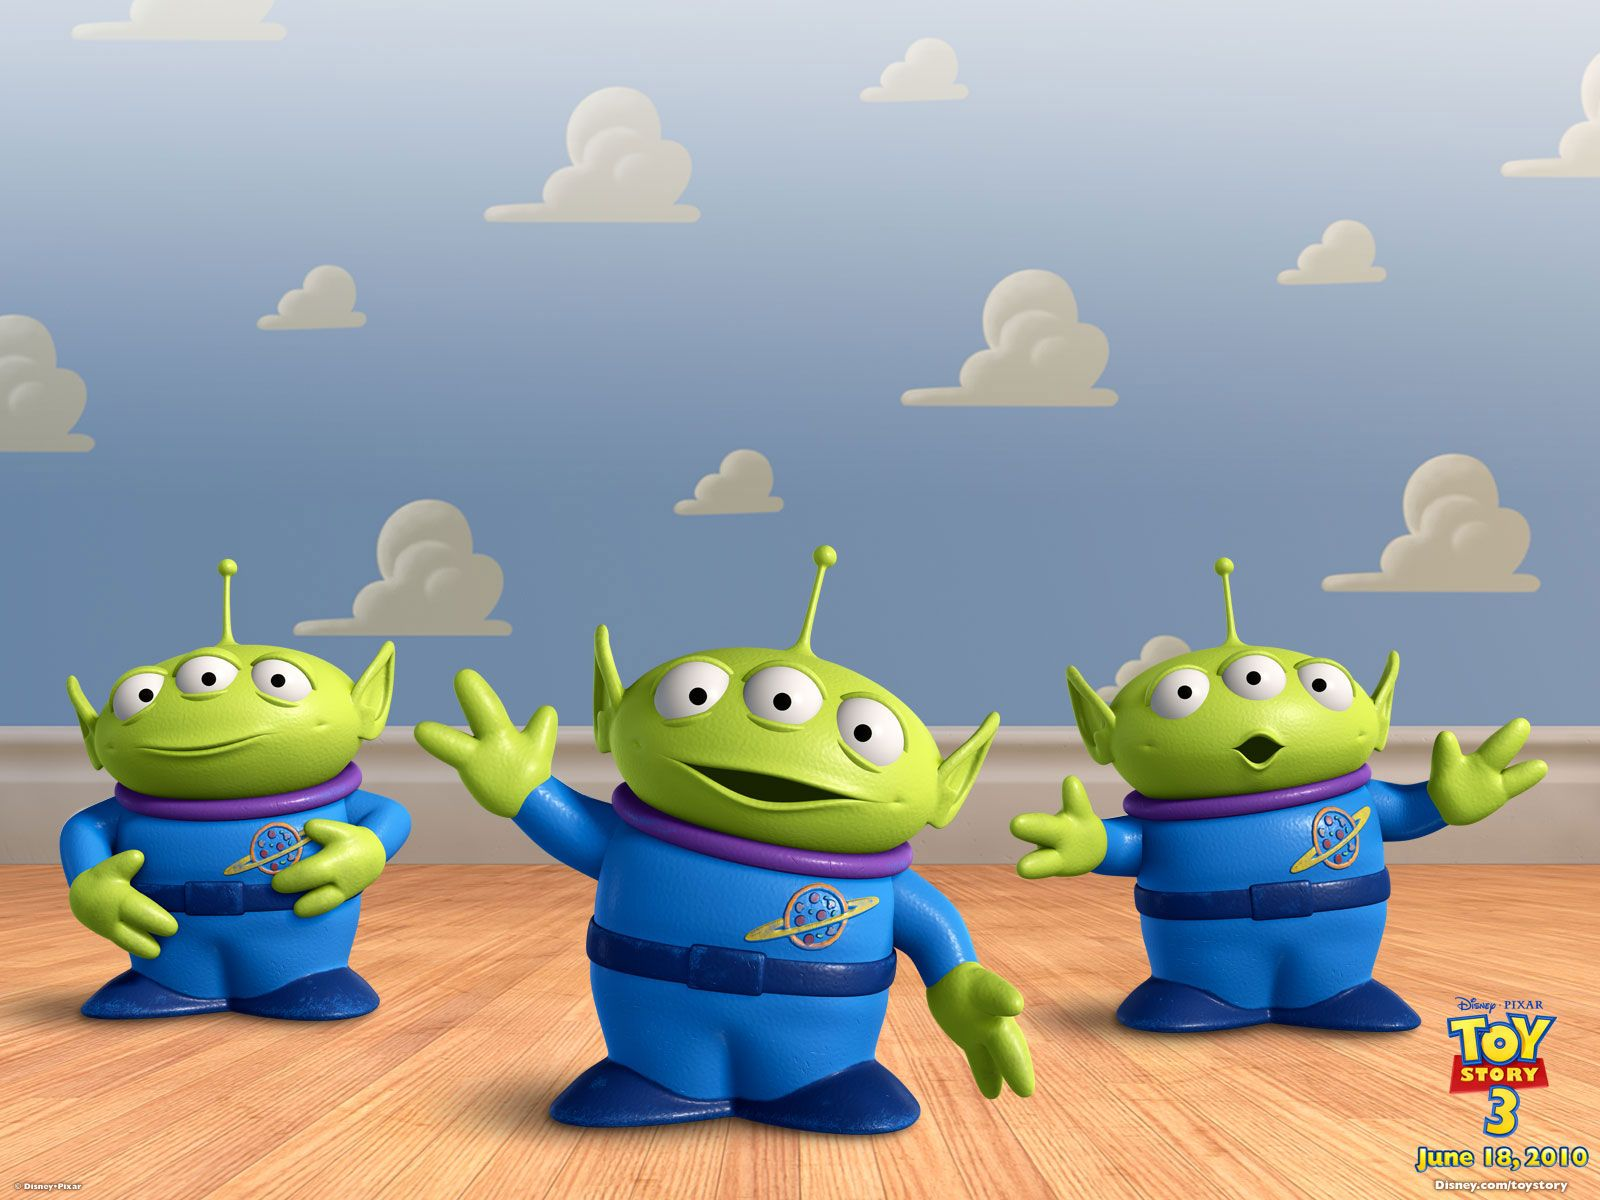 Aliens Toy Story Movie Toy Story 3 Toy Story Alien